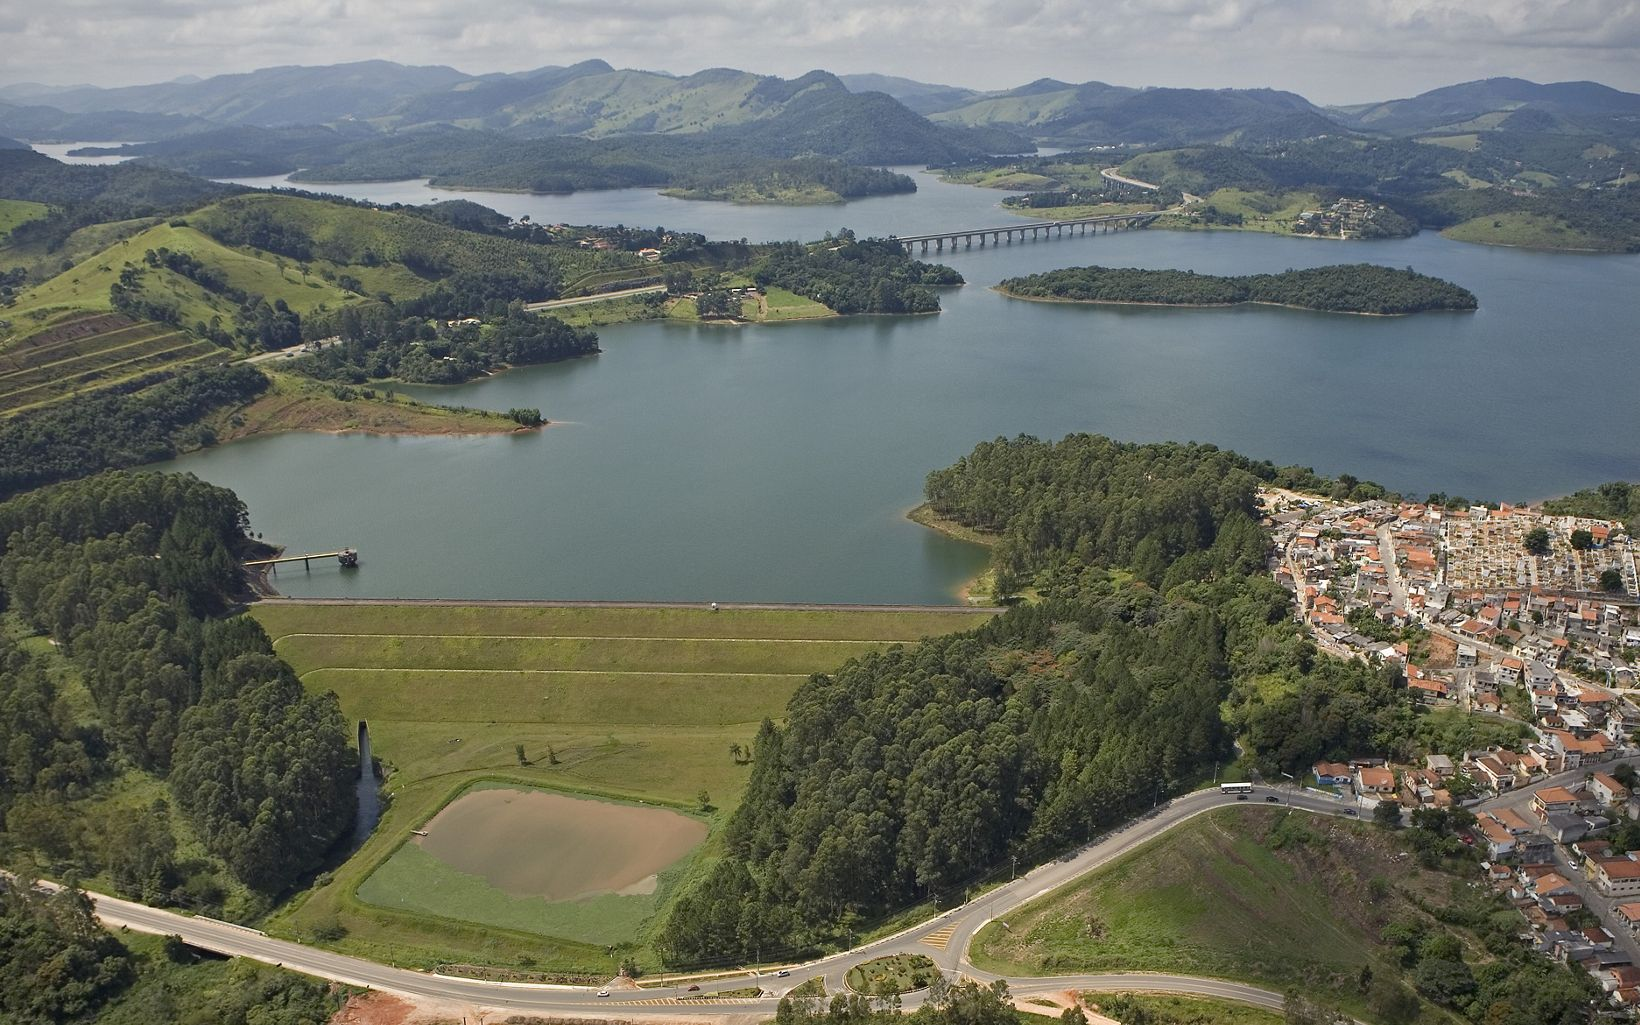 Aerial view of the Atibaina Reservoir near the town of Nazare Paulista, Brazil.